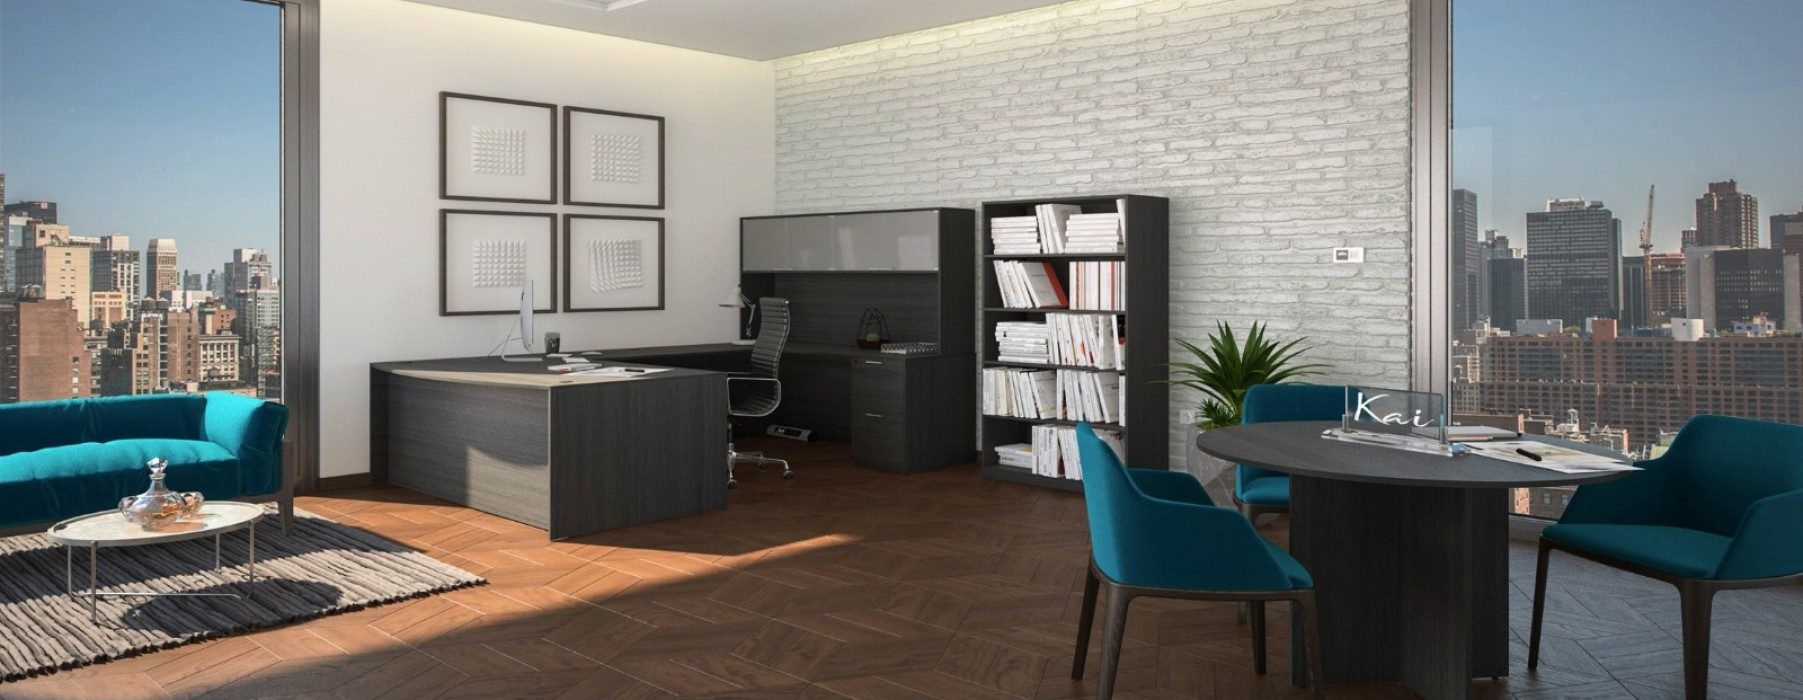 Size reduced Website-KAI office render